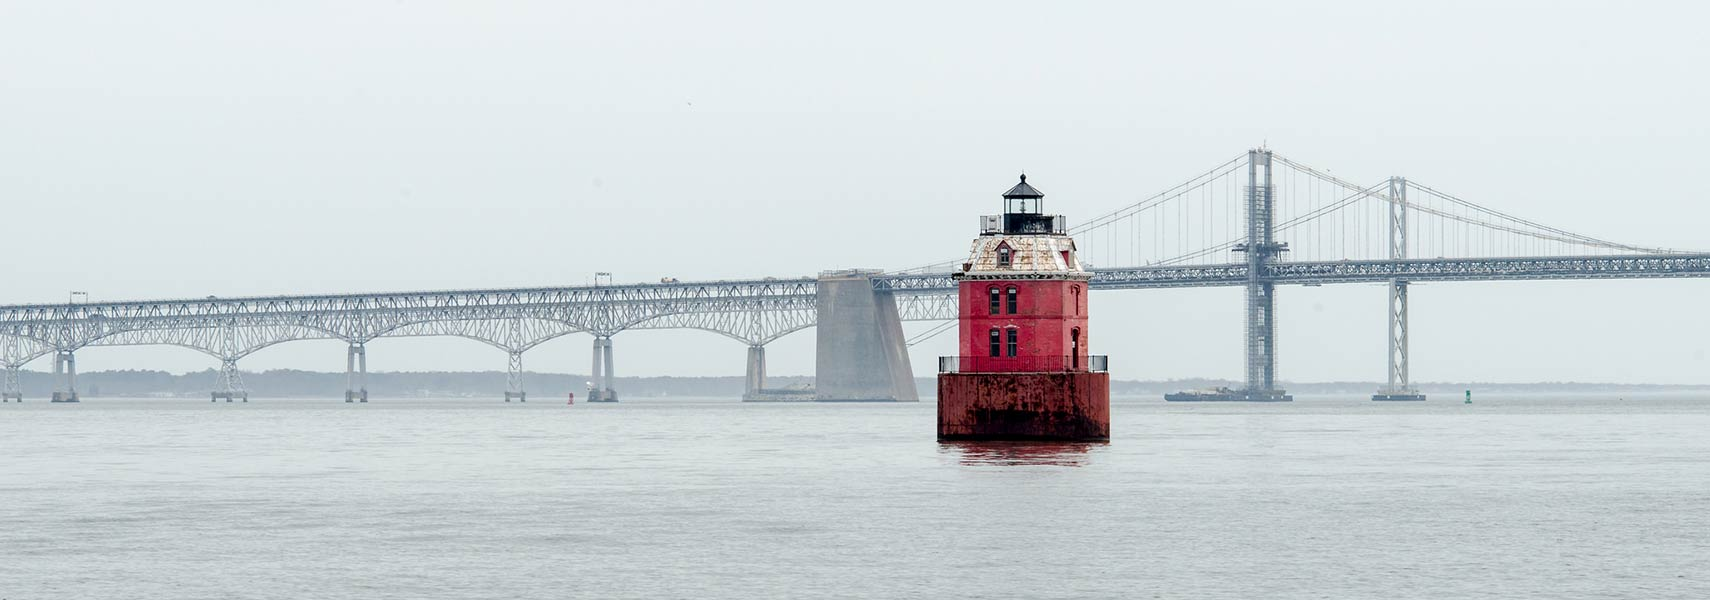 Chesapeake Bay Bridge over the Chesapeake Bay with Sandy Point Shoal Lighthouse